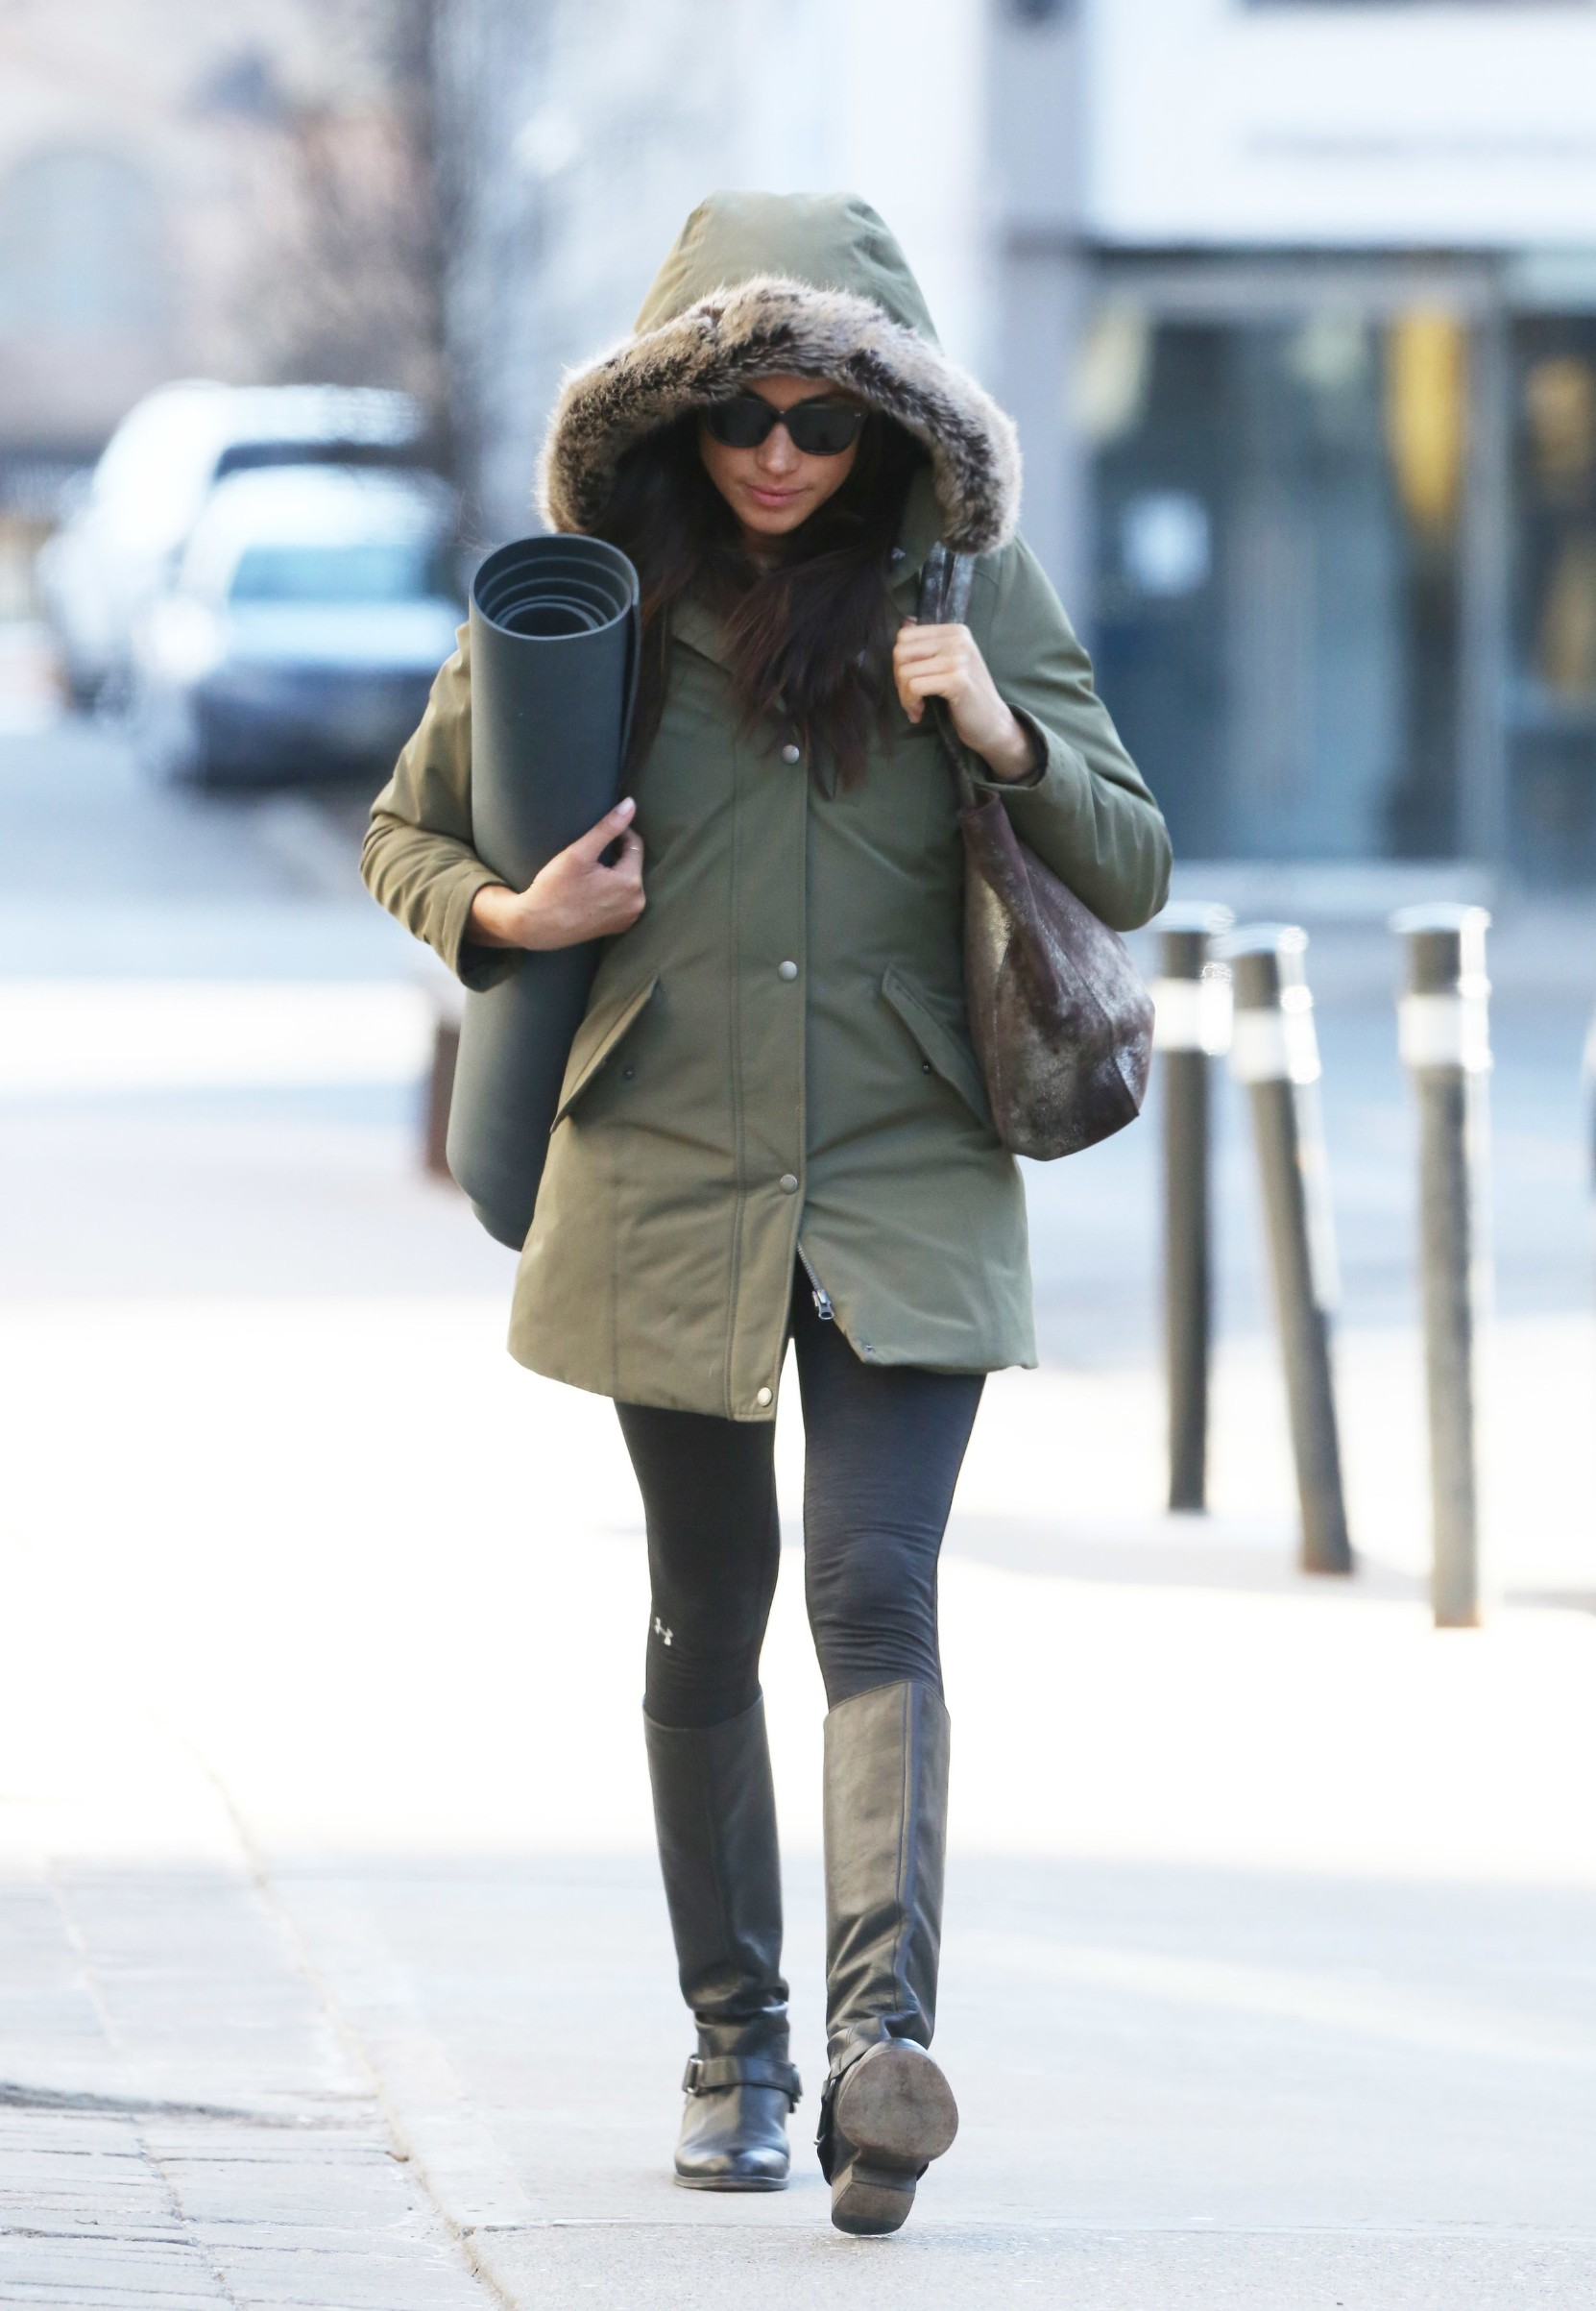 162812, Prince Harry's girlfriend Meghan Markle leaves Yoga in Toronto, Canada. Currently in a extreme weather alert for the Toronto area. Meghan was doing a Hot Yoga session that lasted 1 hour and 15 minutes. Toronto, Canada - Saturday March 11, 2017. CANADA OUT,Image: 324913723, License: Rights-managed, Restrictions: RESTRICTIONS APPLY, Model Release: no, Credit line: PacificCoastNews / Pacific coast news / Profimedia